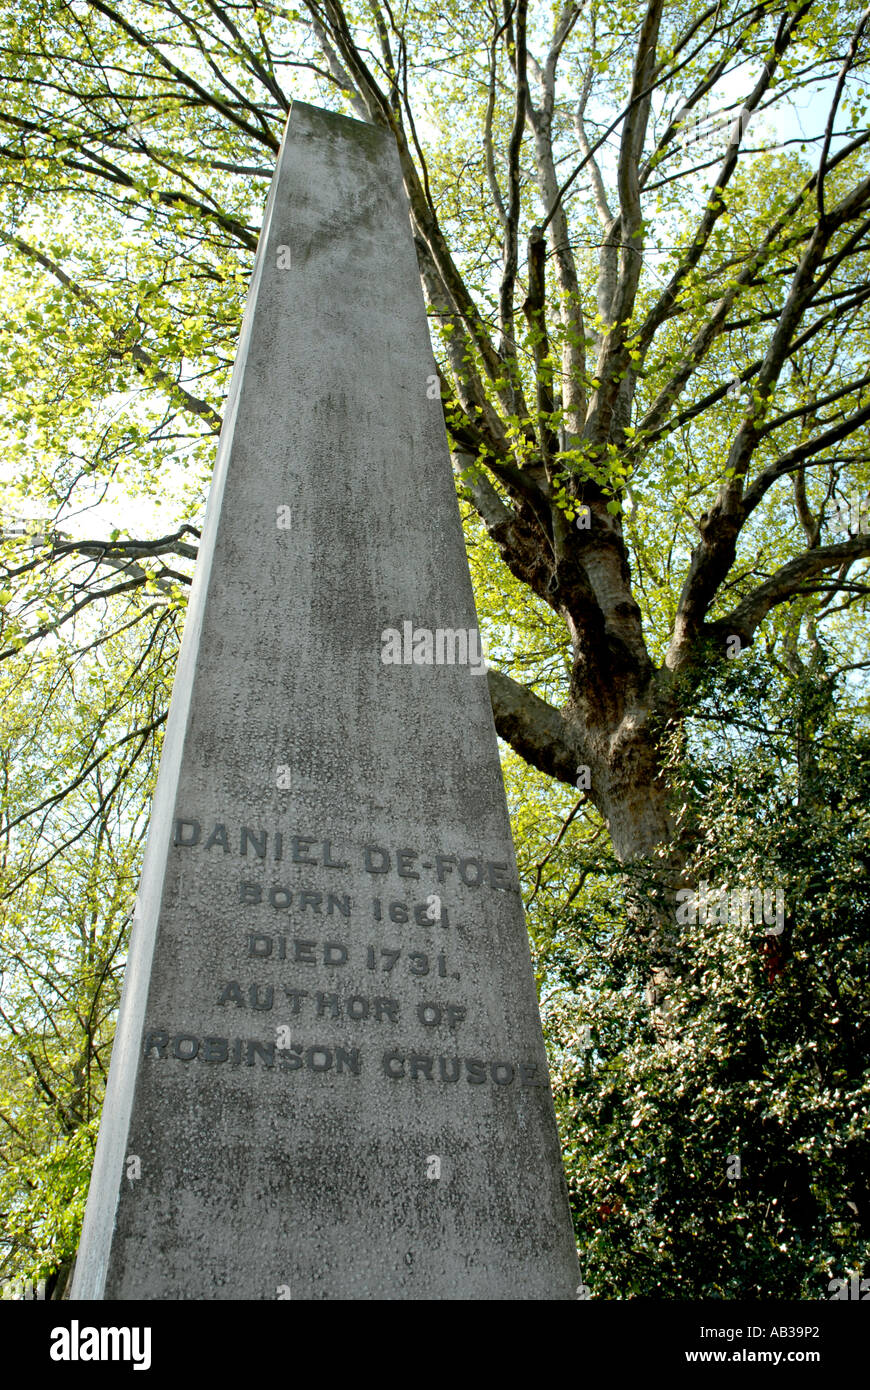 Daniel Defoe gravestone in Bunhill Fields Cemetery London Borough of Islington - Stock Image